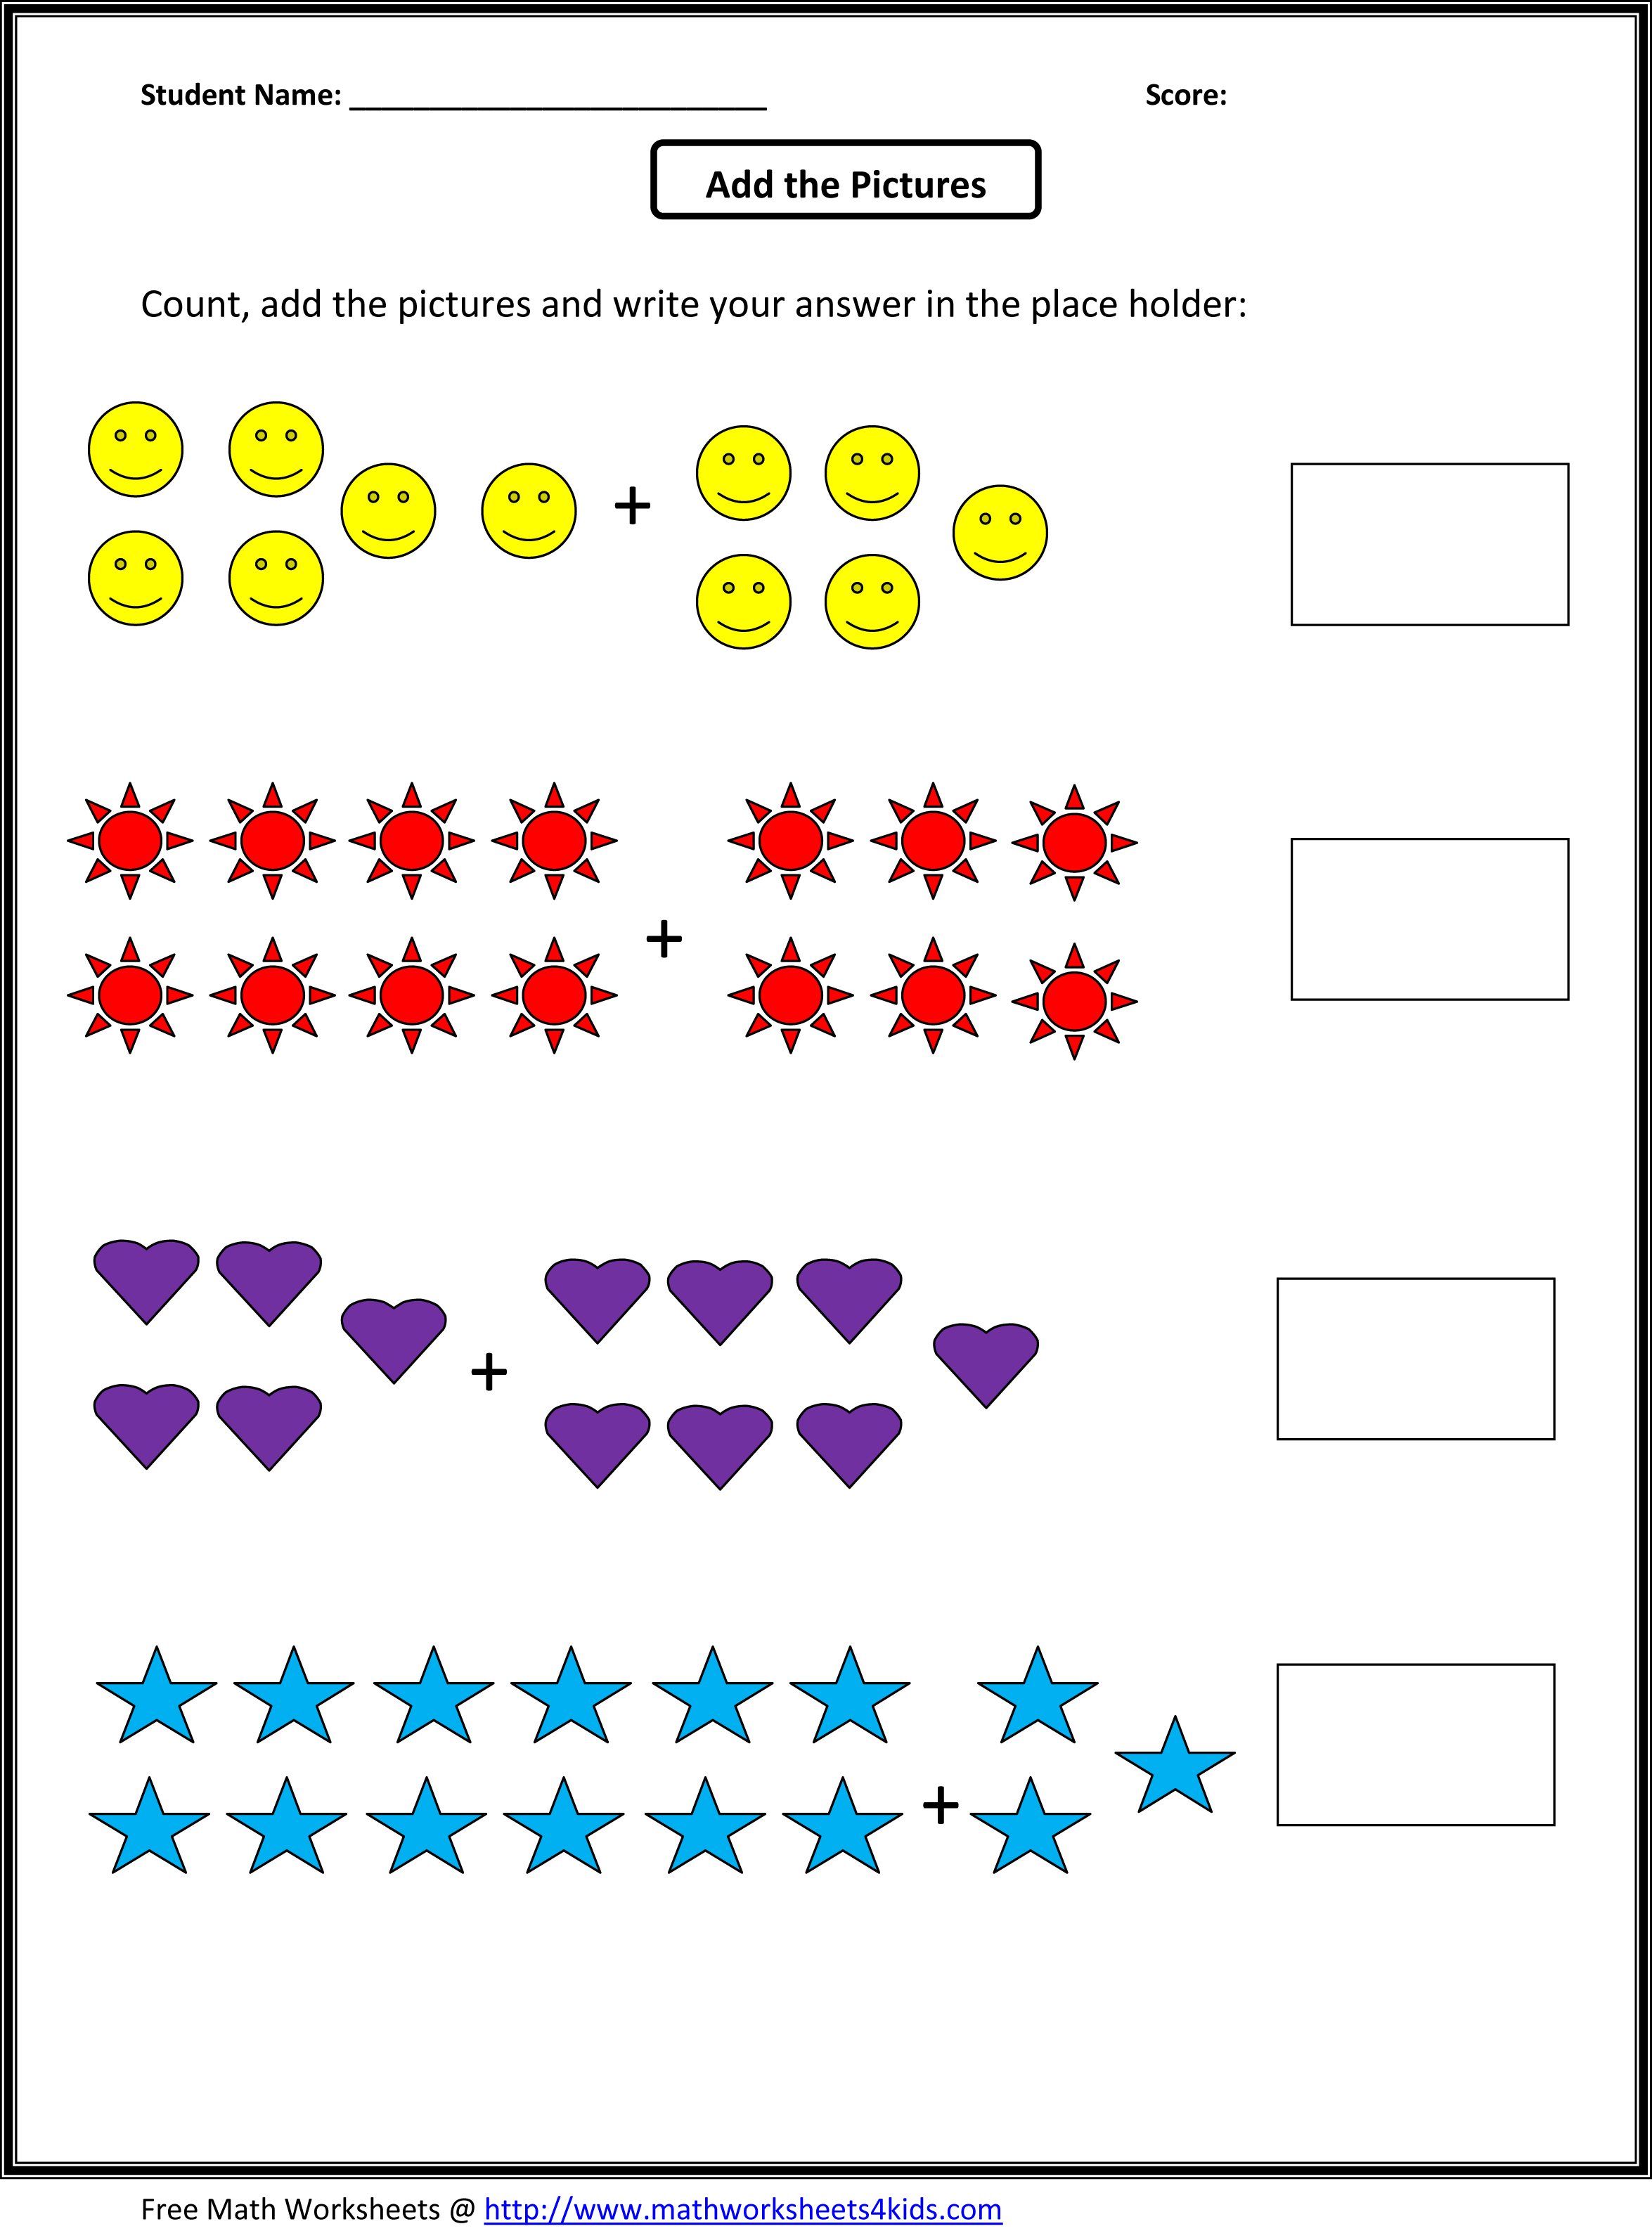 Weirdmailus  Sweet Grade  Maths Worksheet  Reocurent With Great Math Worksheets For St Grade Free  Reocurent With Enchanting Adjective Worksheets For Rd Grade Also Create Cursive Writing Worksheets In Addition Repeated Addition Worksheets For Nd Grade And Decimal Word Problem Worksheets As Well As Contagion Movie Worksheet Additionally Small Business Tax Deductions Worksheet From Reocurentcom With Weirdmailus  Great Grade  Maths Worksheet  Reocurent With Enchanting Math Worksheets For St Grade Free  Reocurent And Sweet Adjective Worksheets For Rd Grade Also Create Cursive Writing Worksheets In Addition Repeated Addition Worksheets For Nd Grade From Reocurentcom